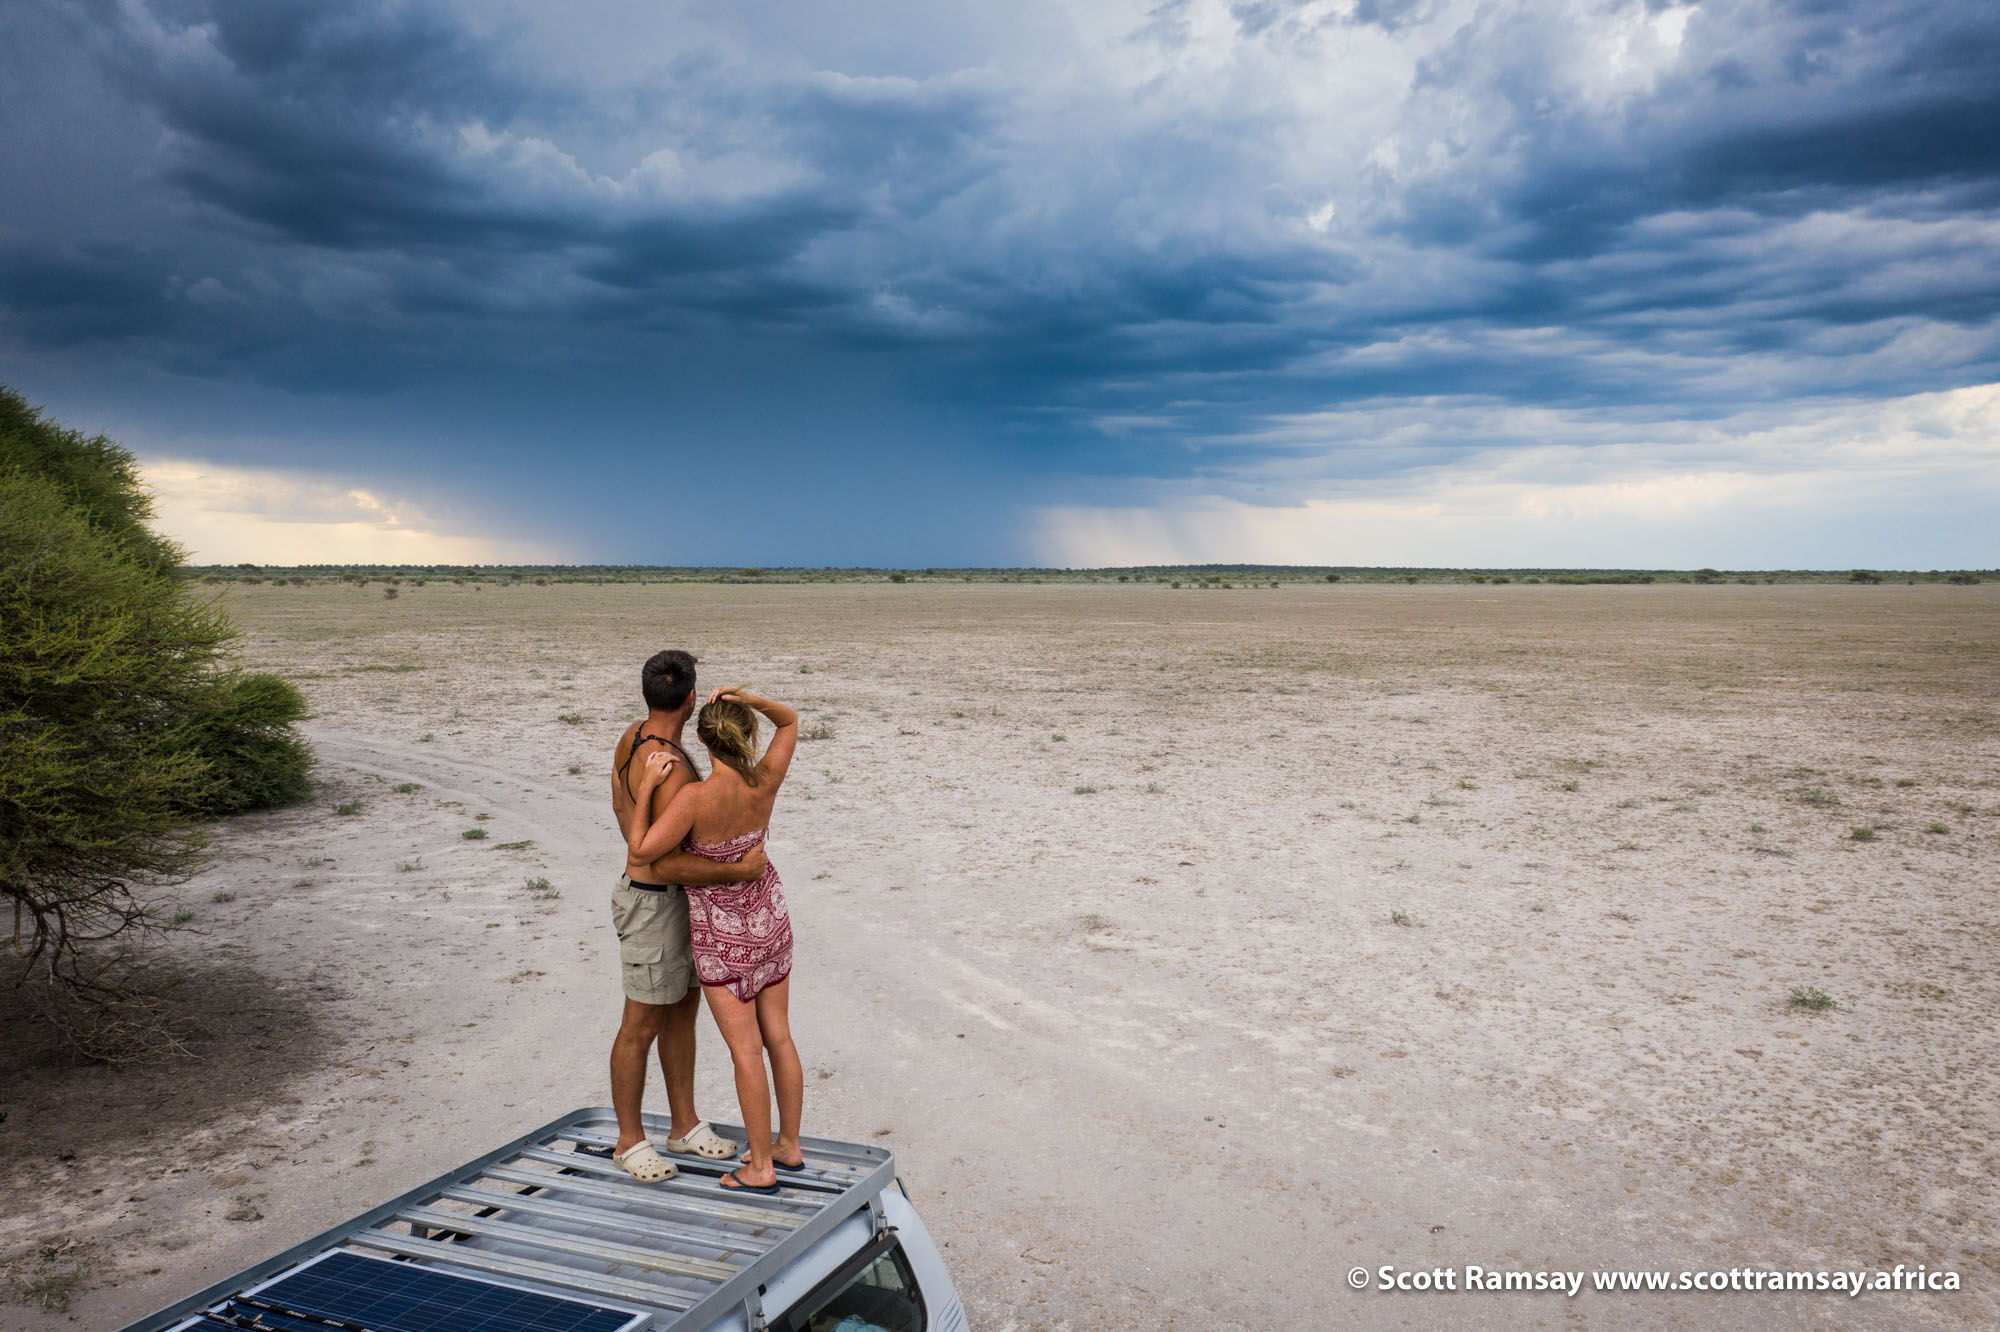 Ian and Joni watching a storm approaching across Leopard Pan, our last campsite of the trip.